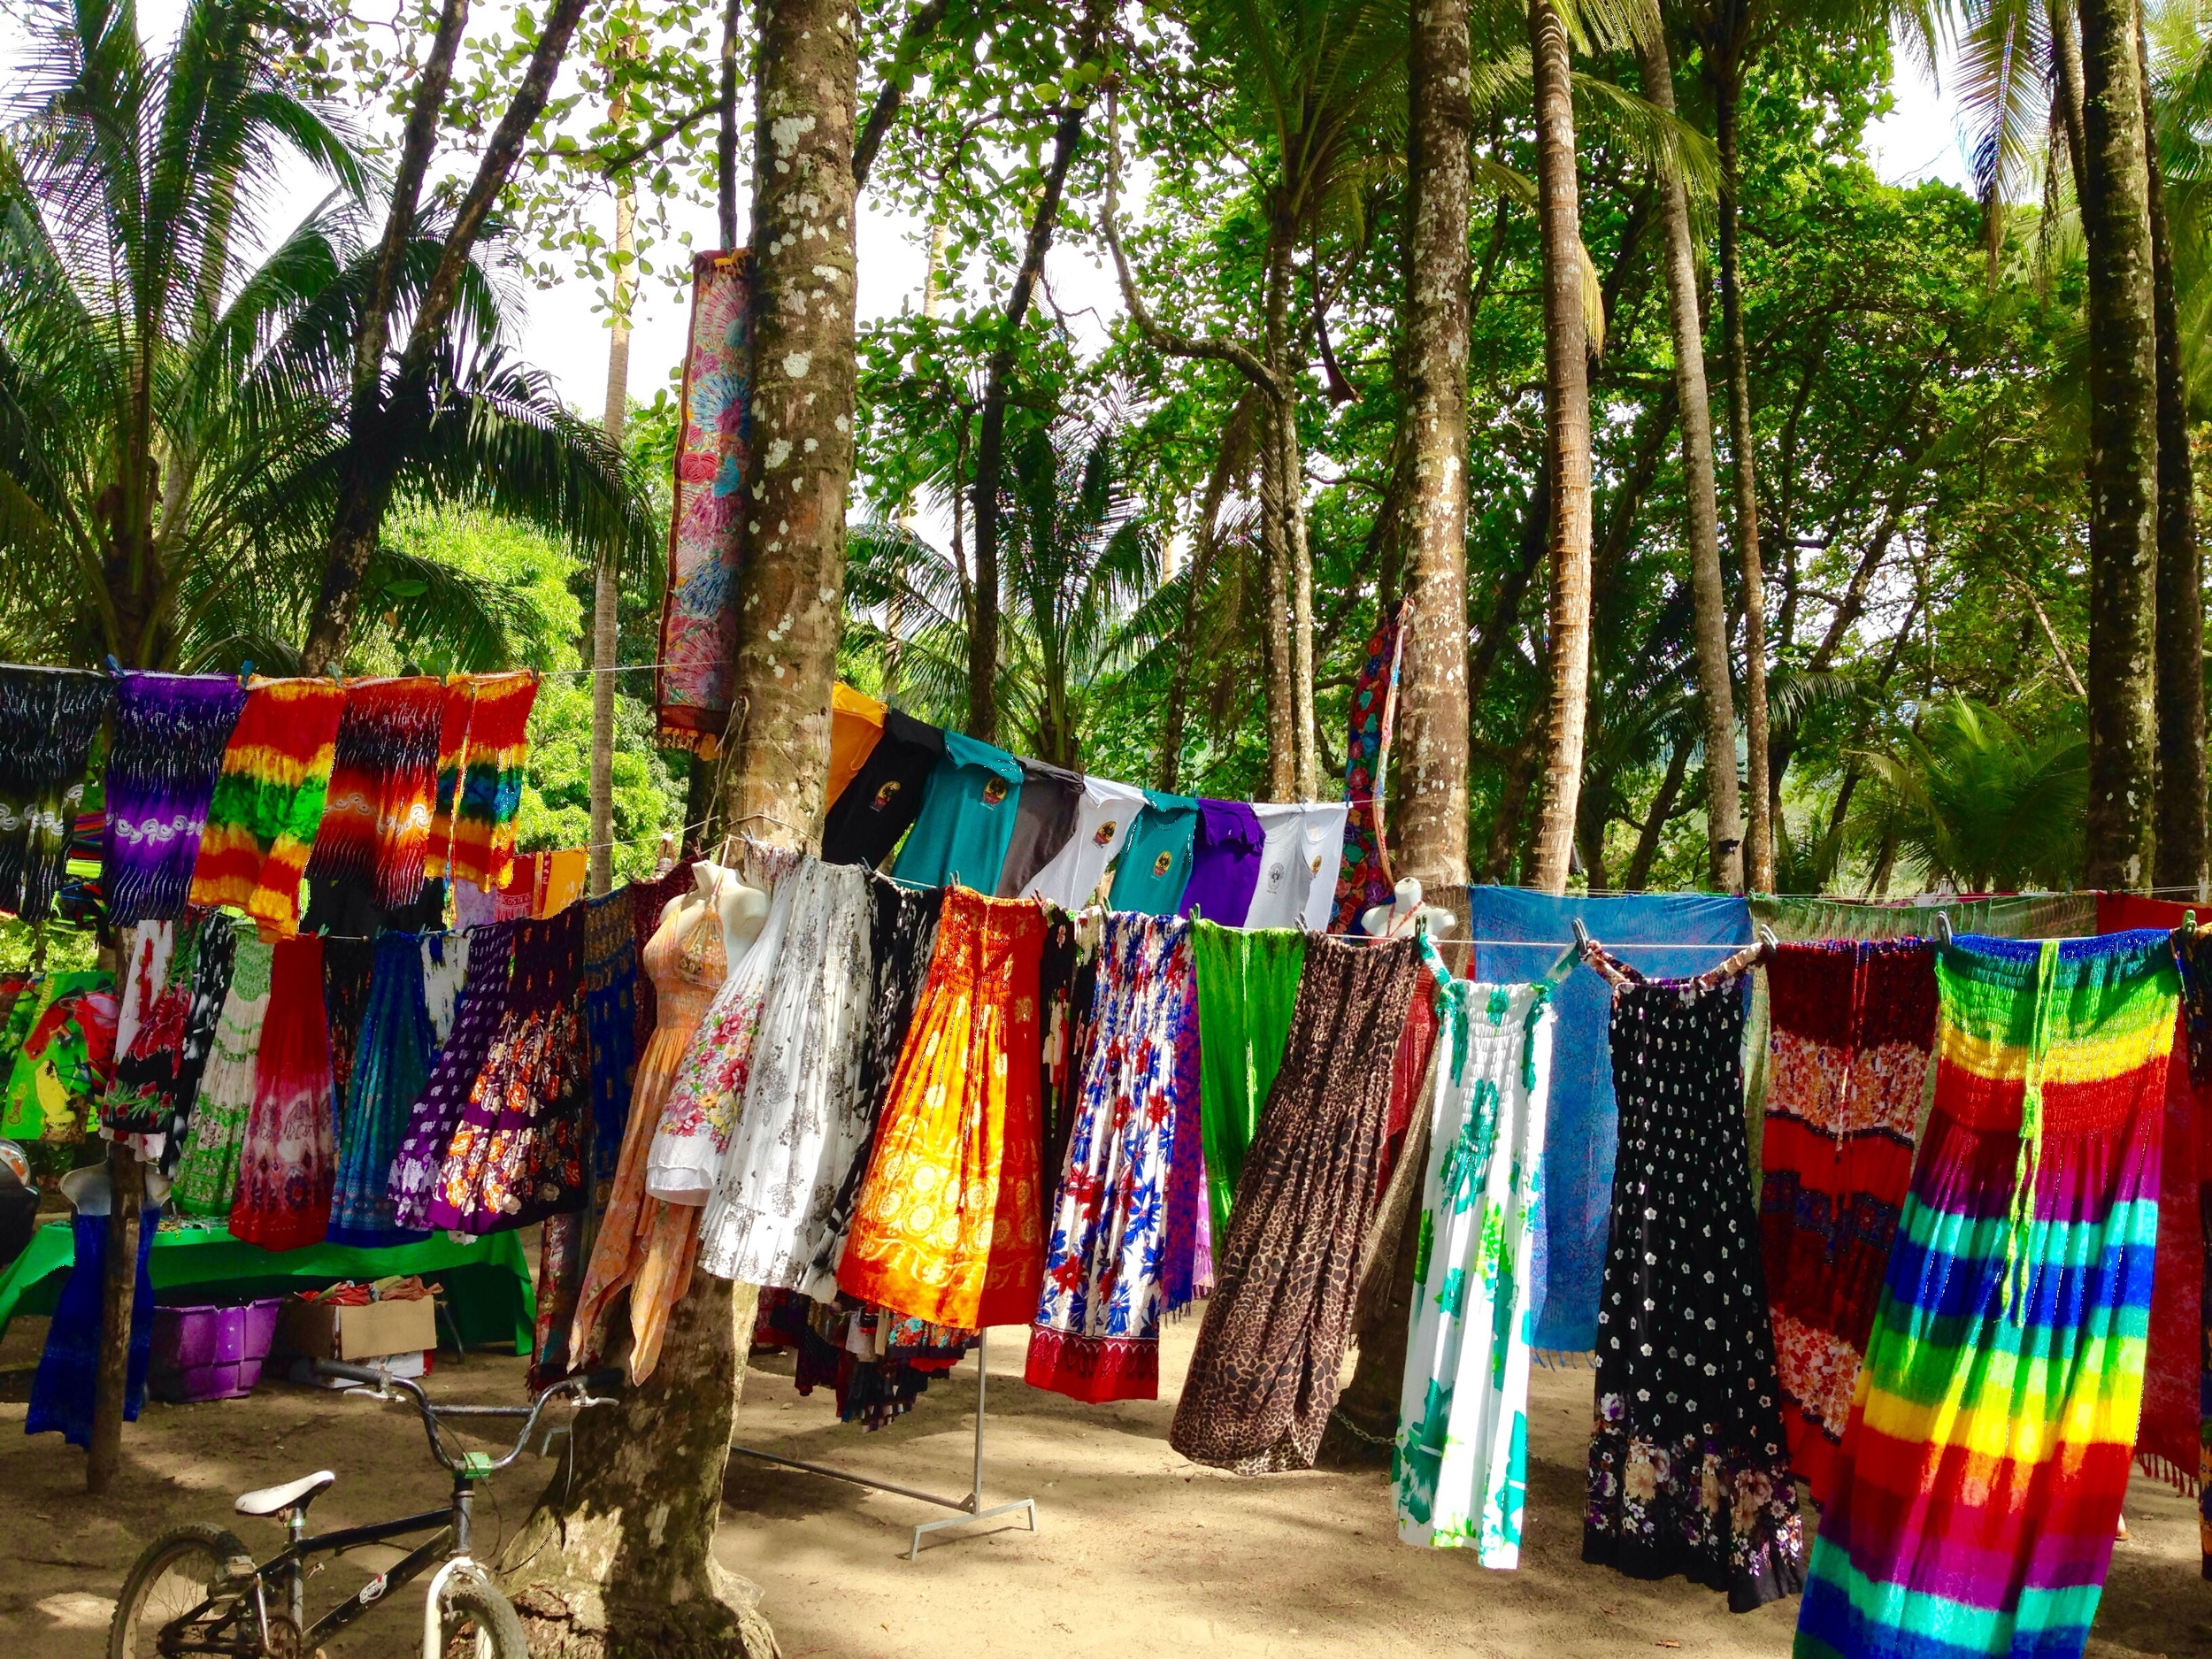 Dominical often features a large outdoor market selling vibrant dresses, sarongs, and artisan works.